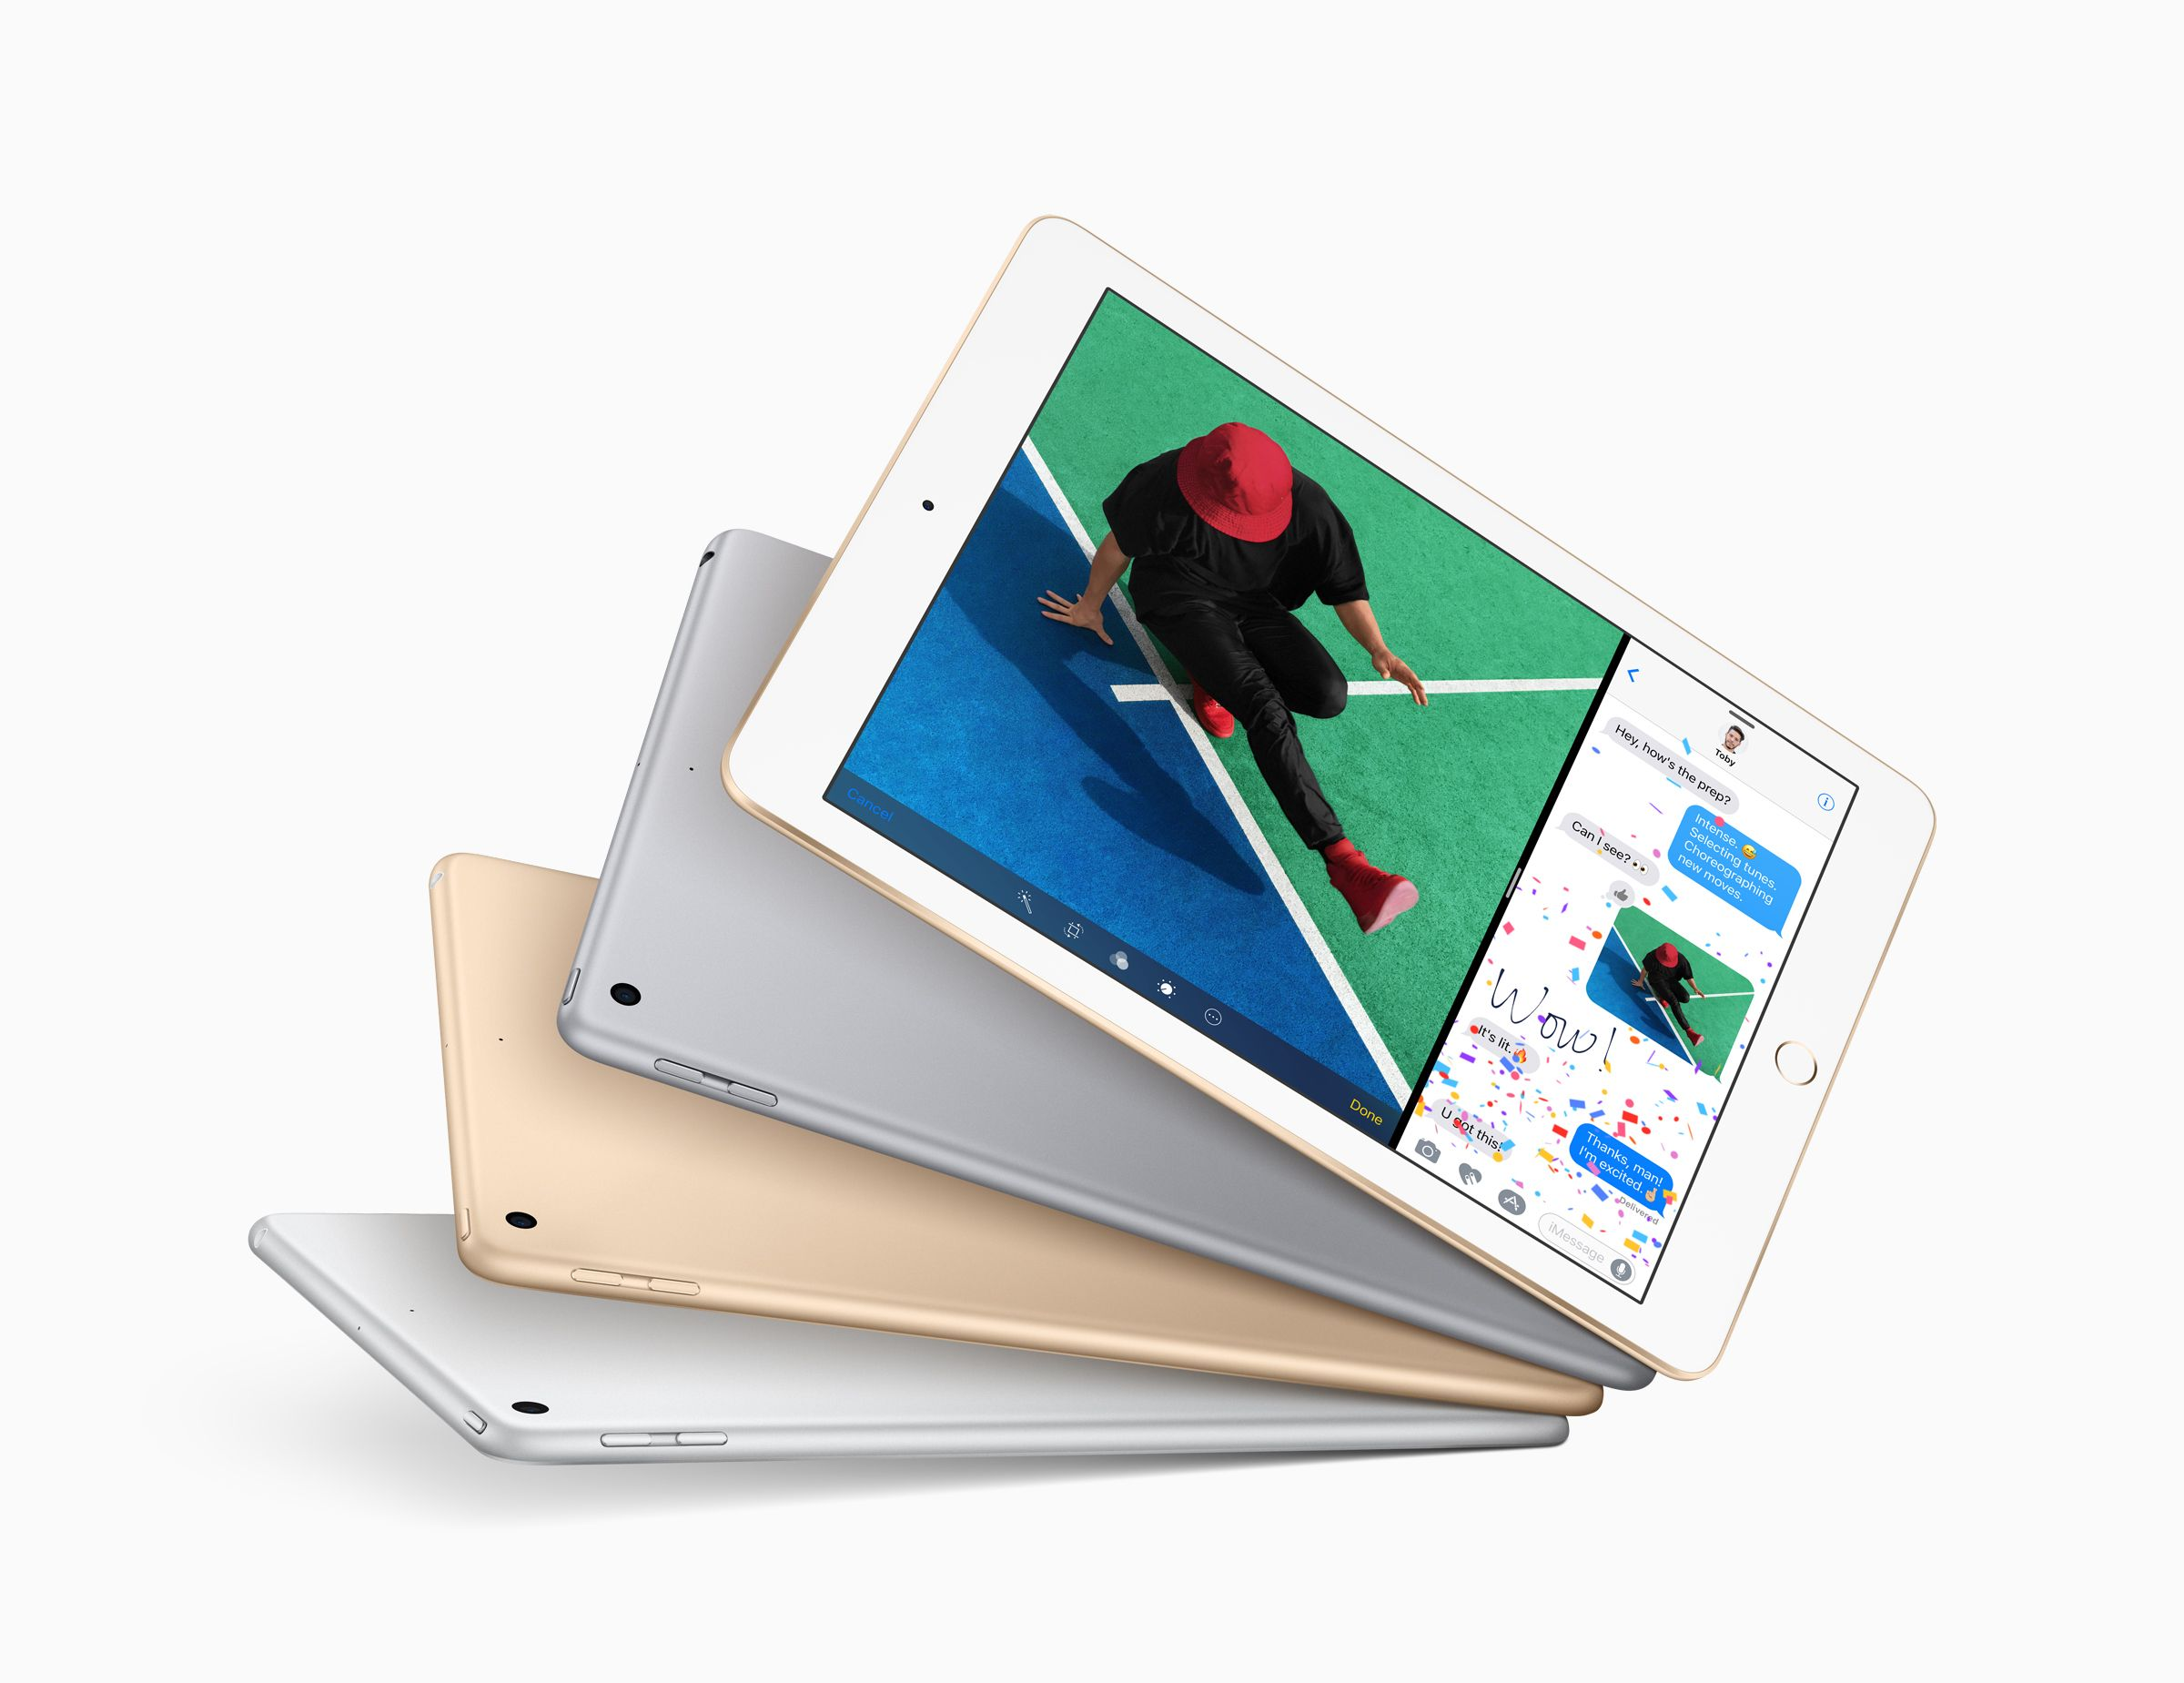 affordable_new_9-7-inch_ipad_group_fan